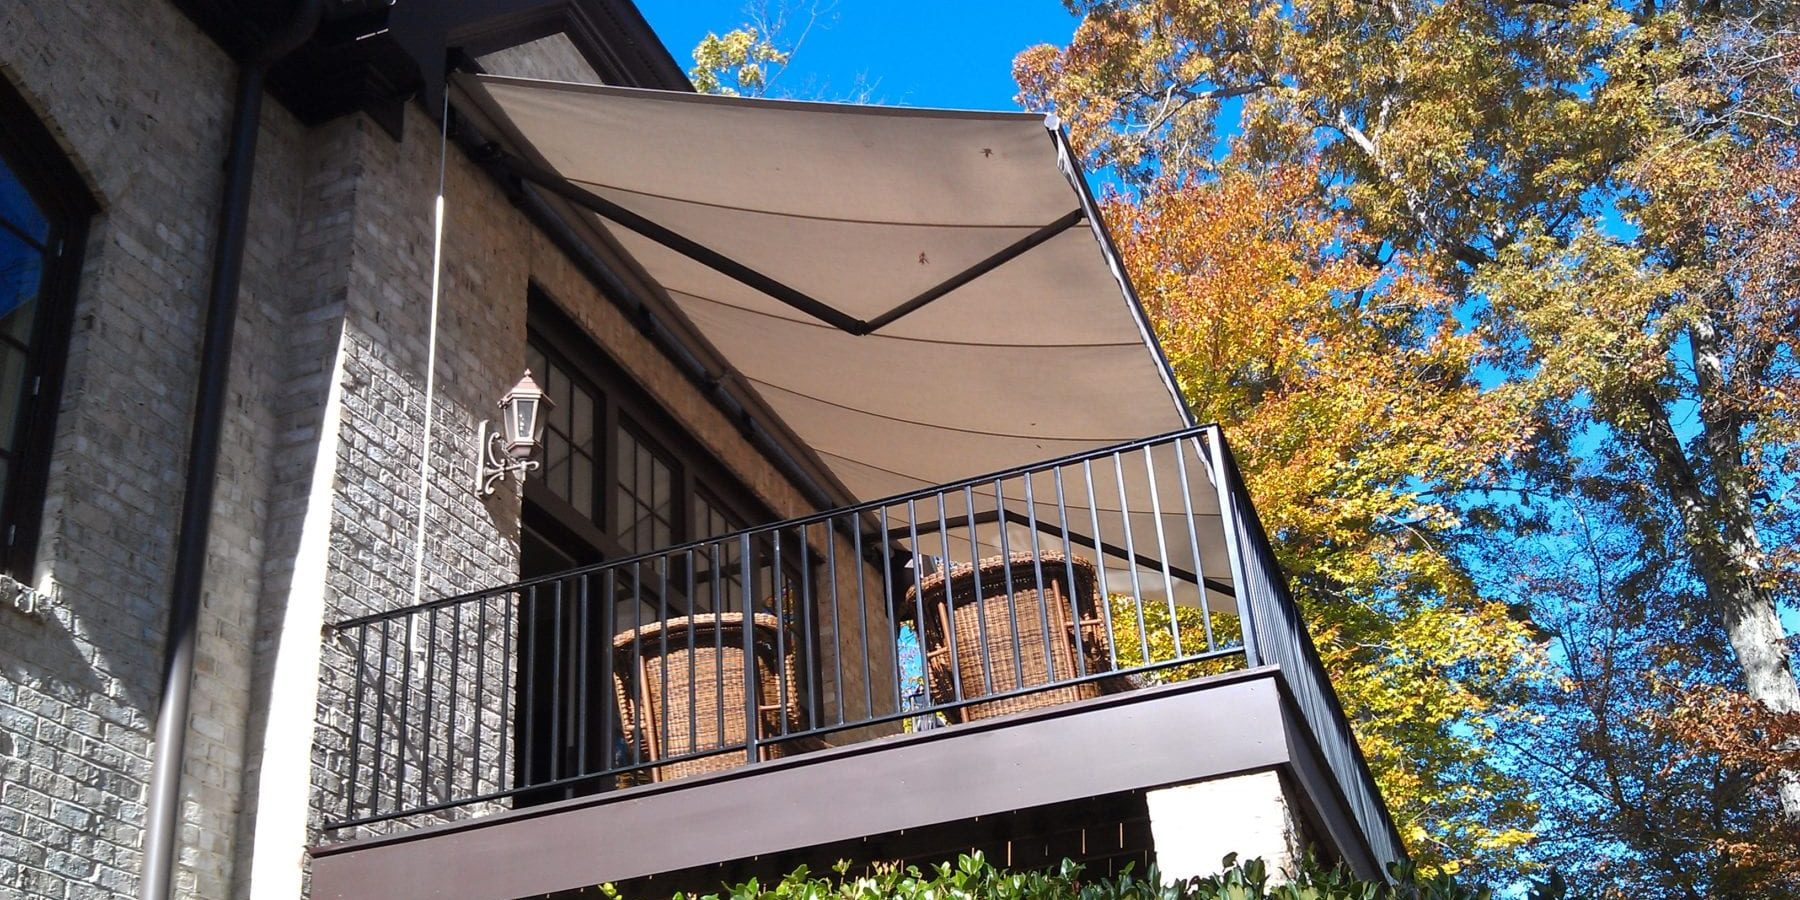 Retractable awnings are designed to fold or roll back when not in use. The retraction may be manual or motorized. Sensors, remote controls, and buttons switches are used to operate the motorized options. These popular outdoor coverings are available in different fabrics. Some common choices include solution-dyed acrylic and vinyl-coated fabrics.